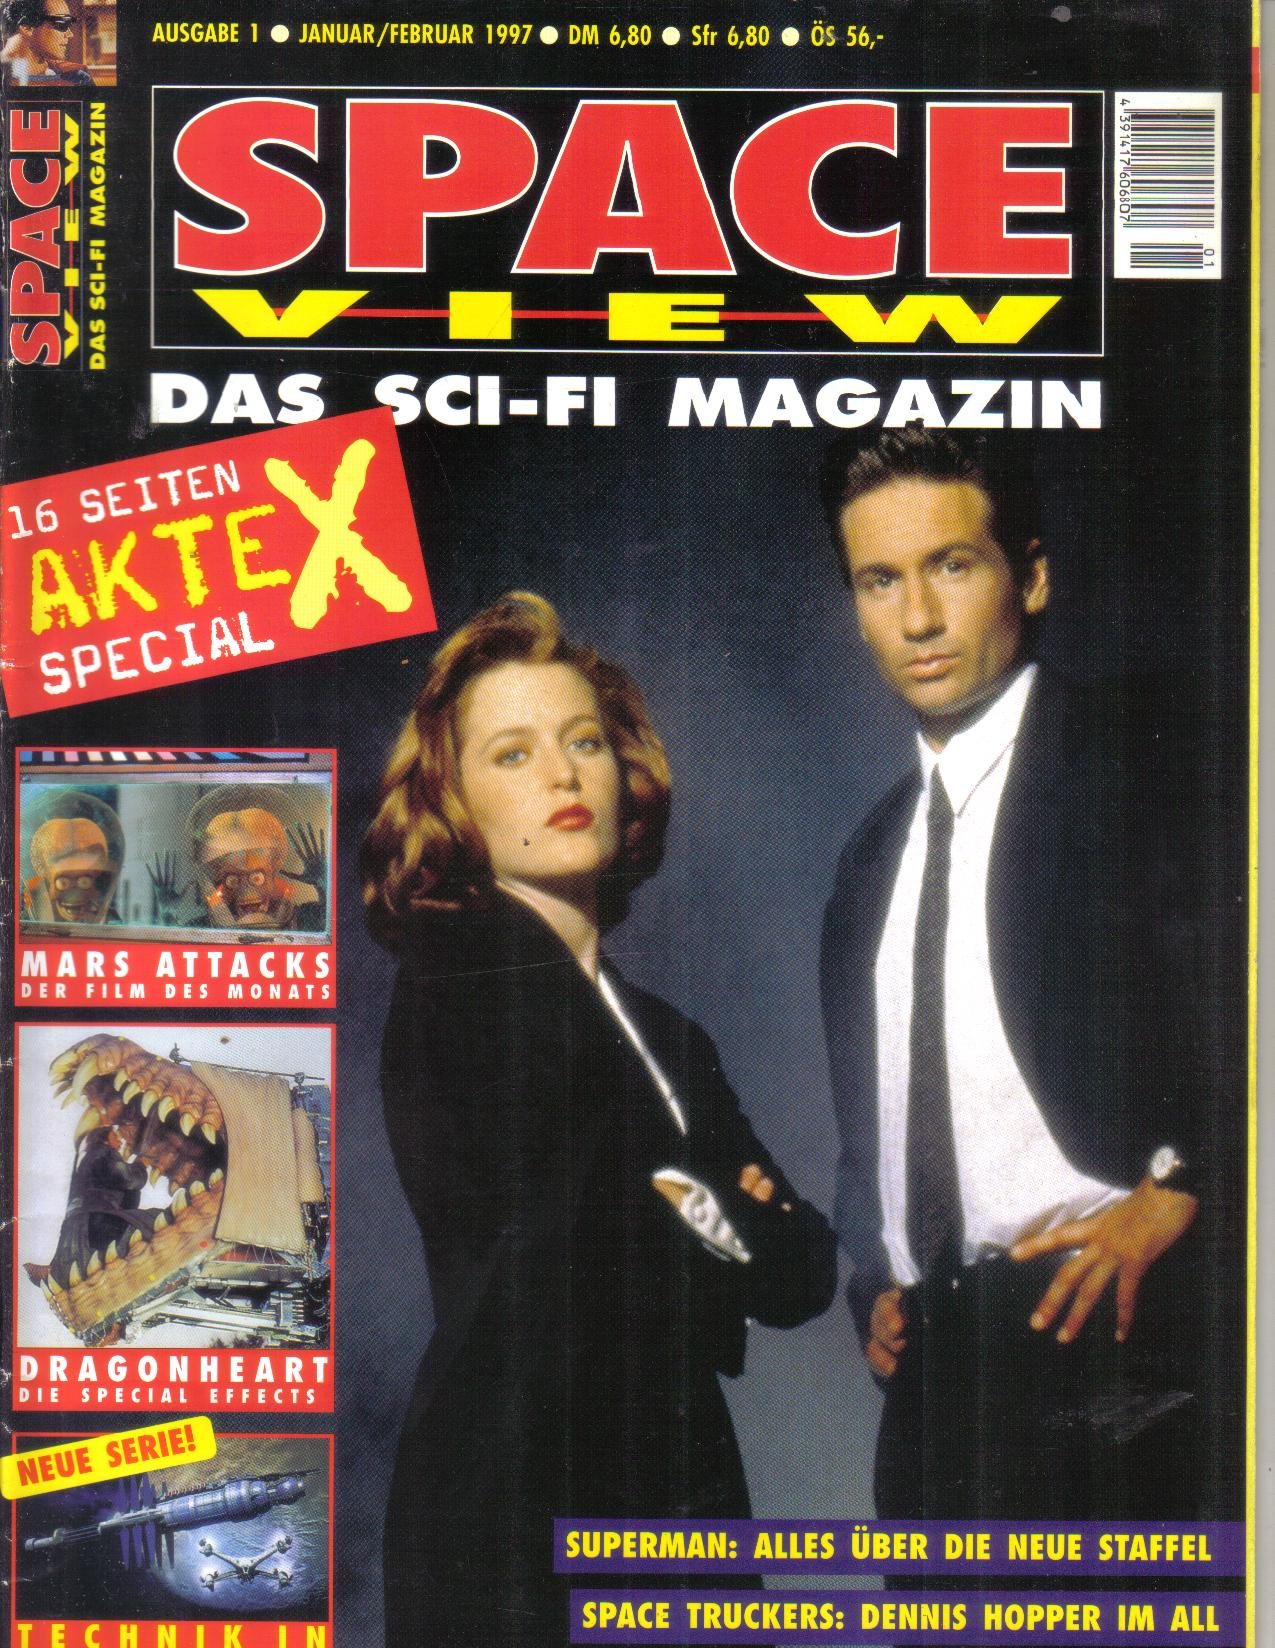 Space View Das Sci-FI Magazin1997